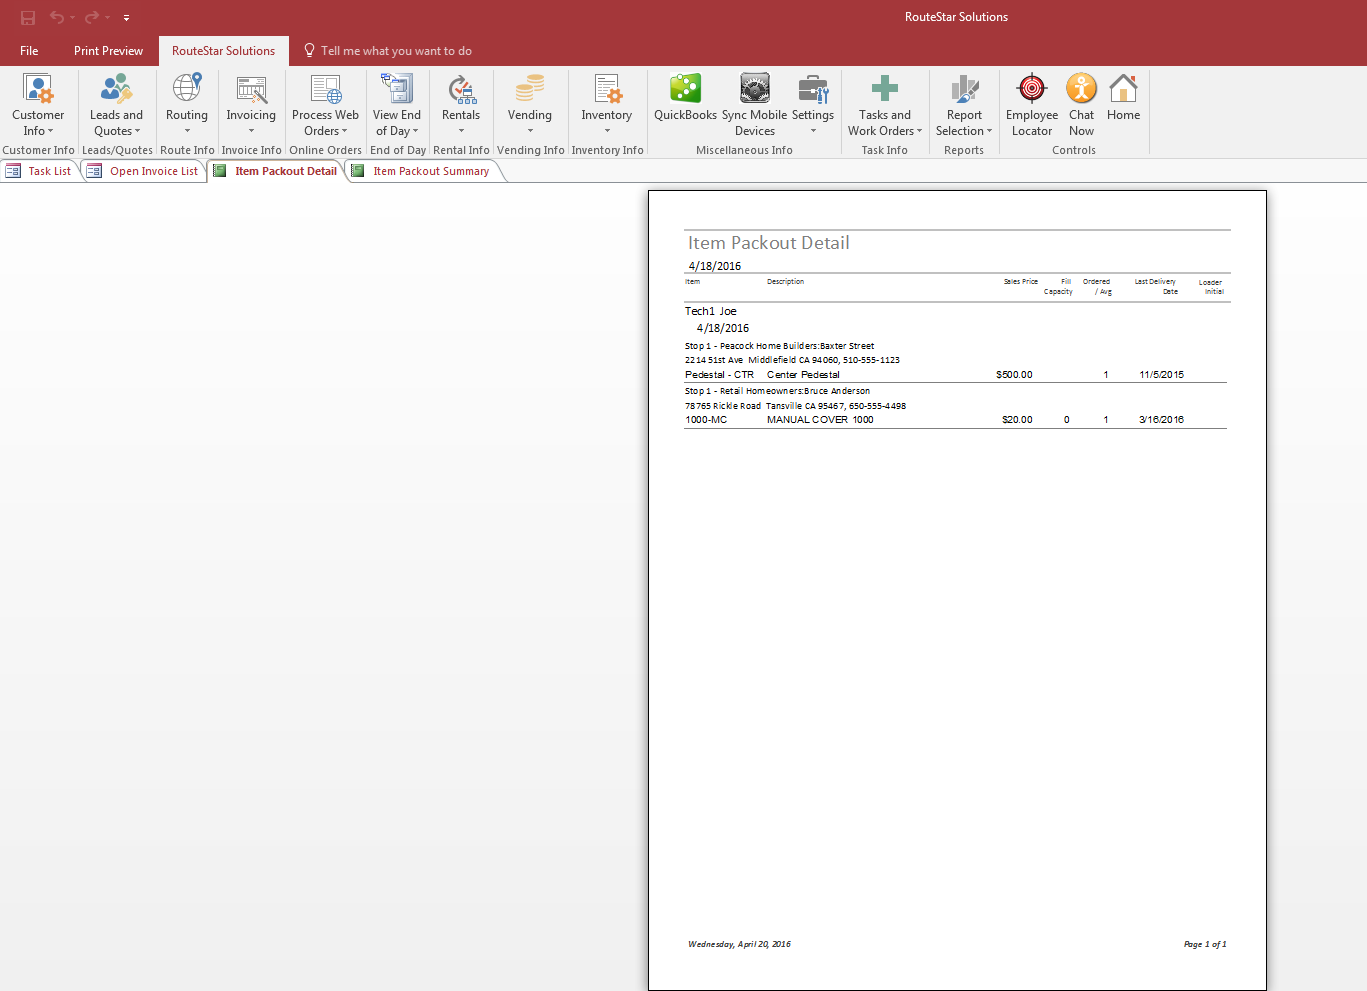 How To Print A Pack Out Report Online Help Center - Quickbooks invoice list report